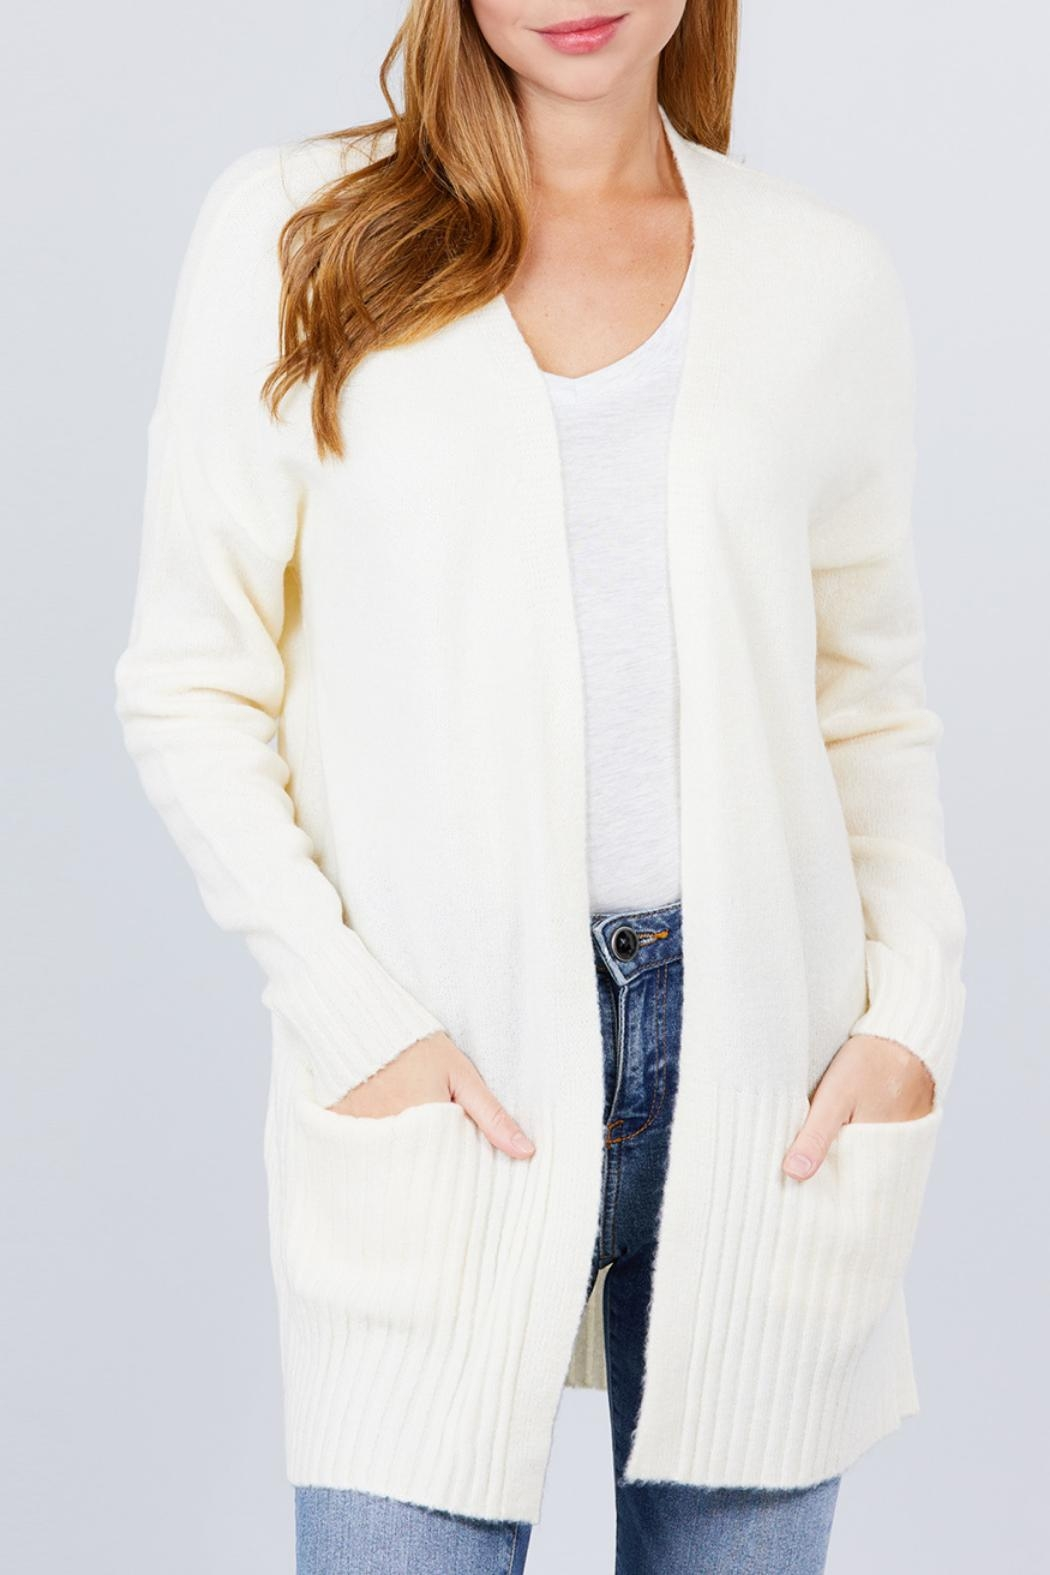 Active USA Ivory Open-Front Cardigan - Main Image